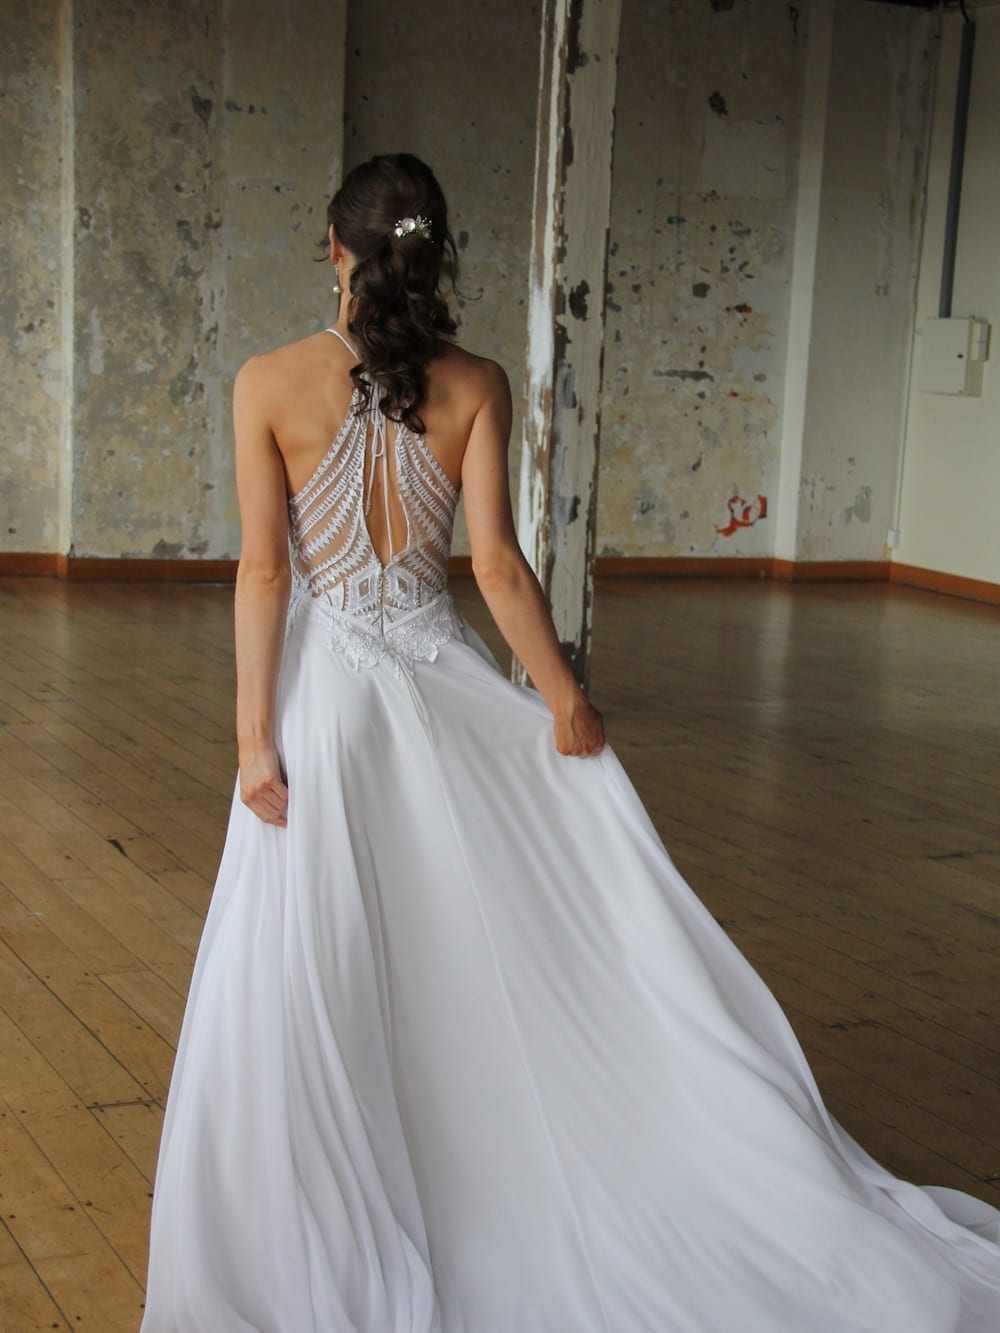 Female model wearing Vinka Design Modern Muse Wedding Dress. In chic warehouse the back detail of a light, halter-necked gown with a fluid chiffon skirt.